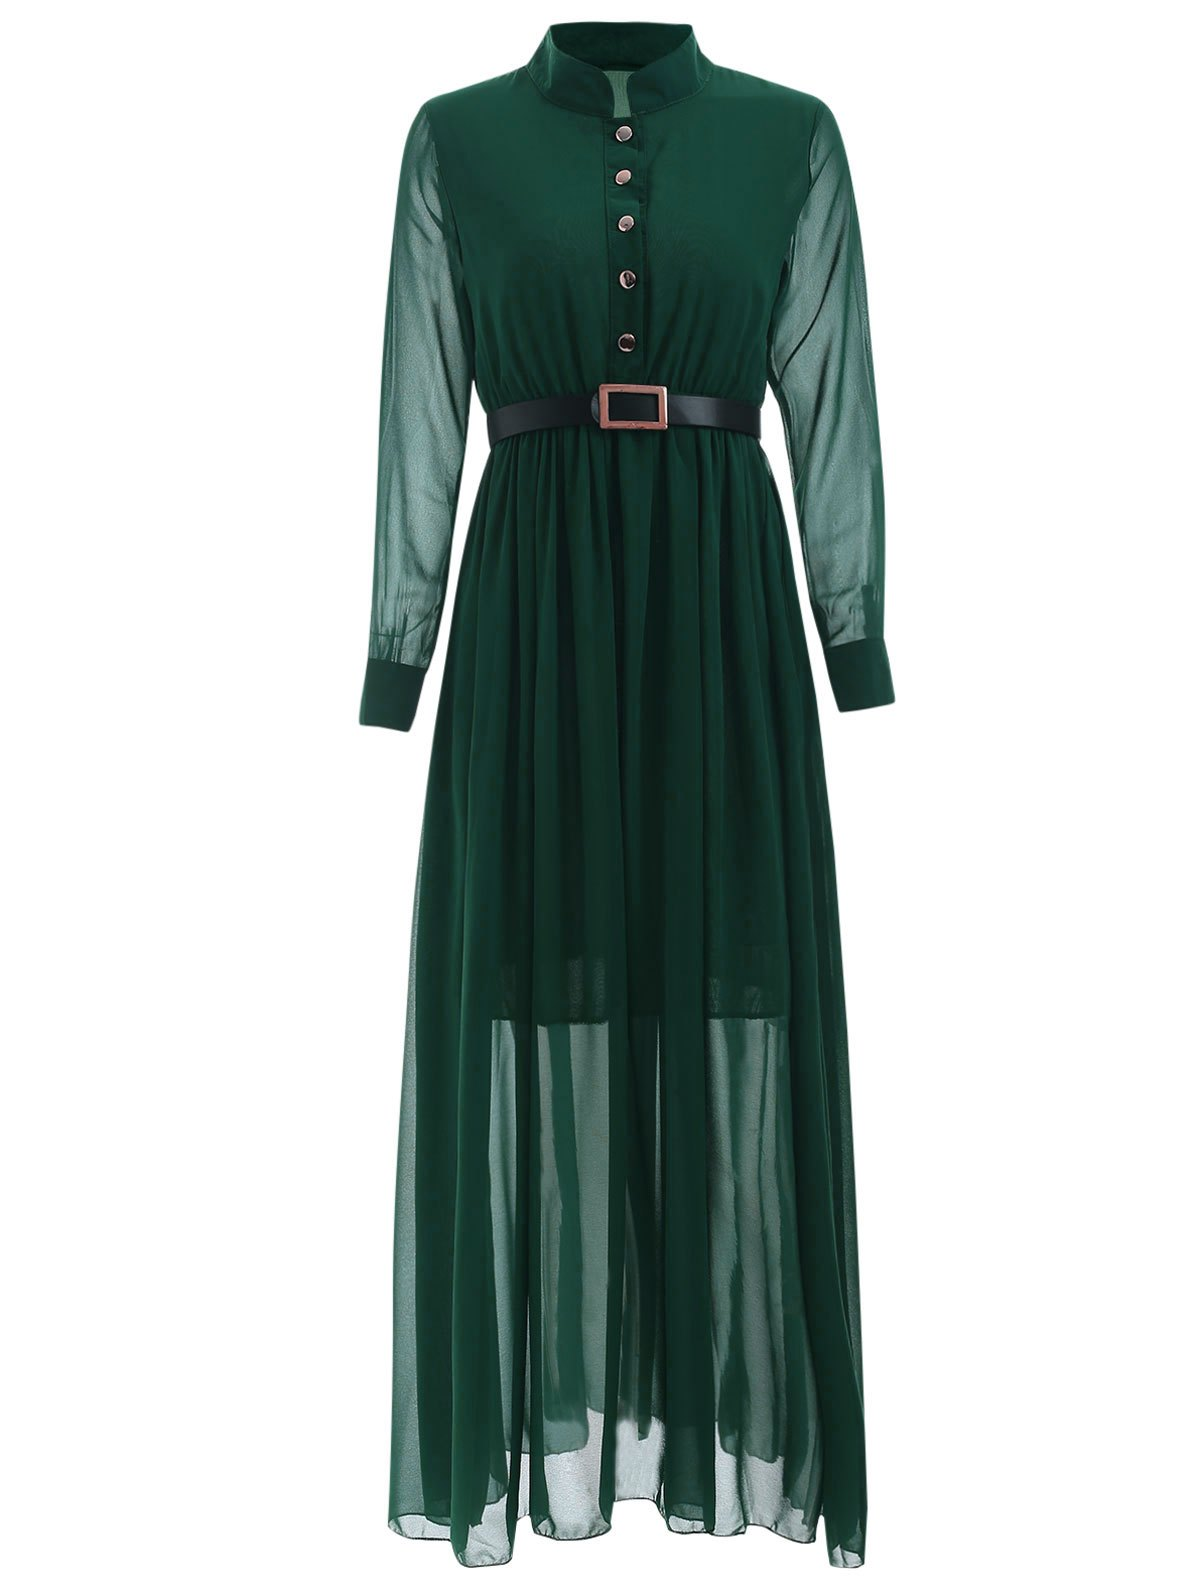 Stand Collar Long Sleeve Belted Dress - BLACKISH GREEN XL